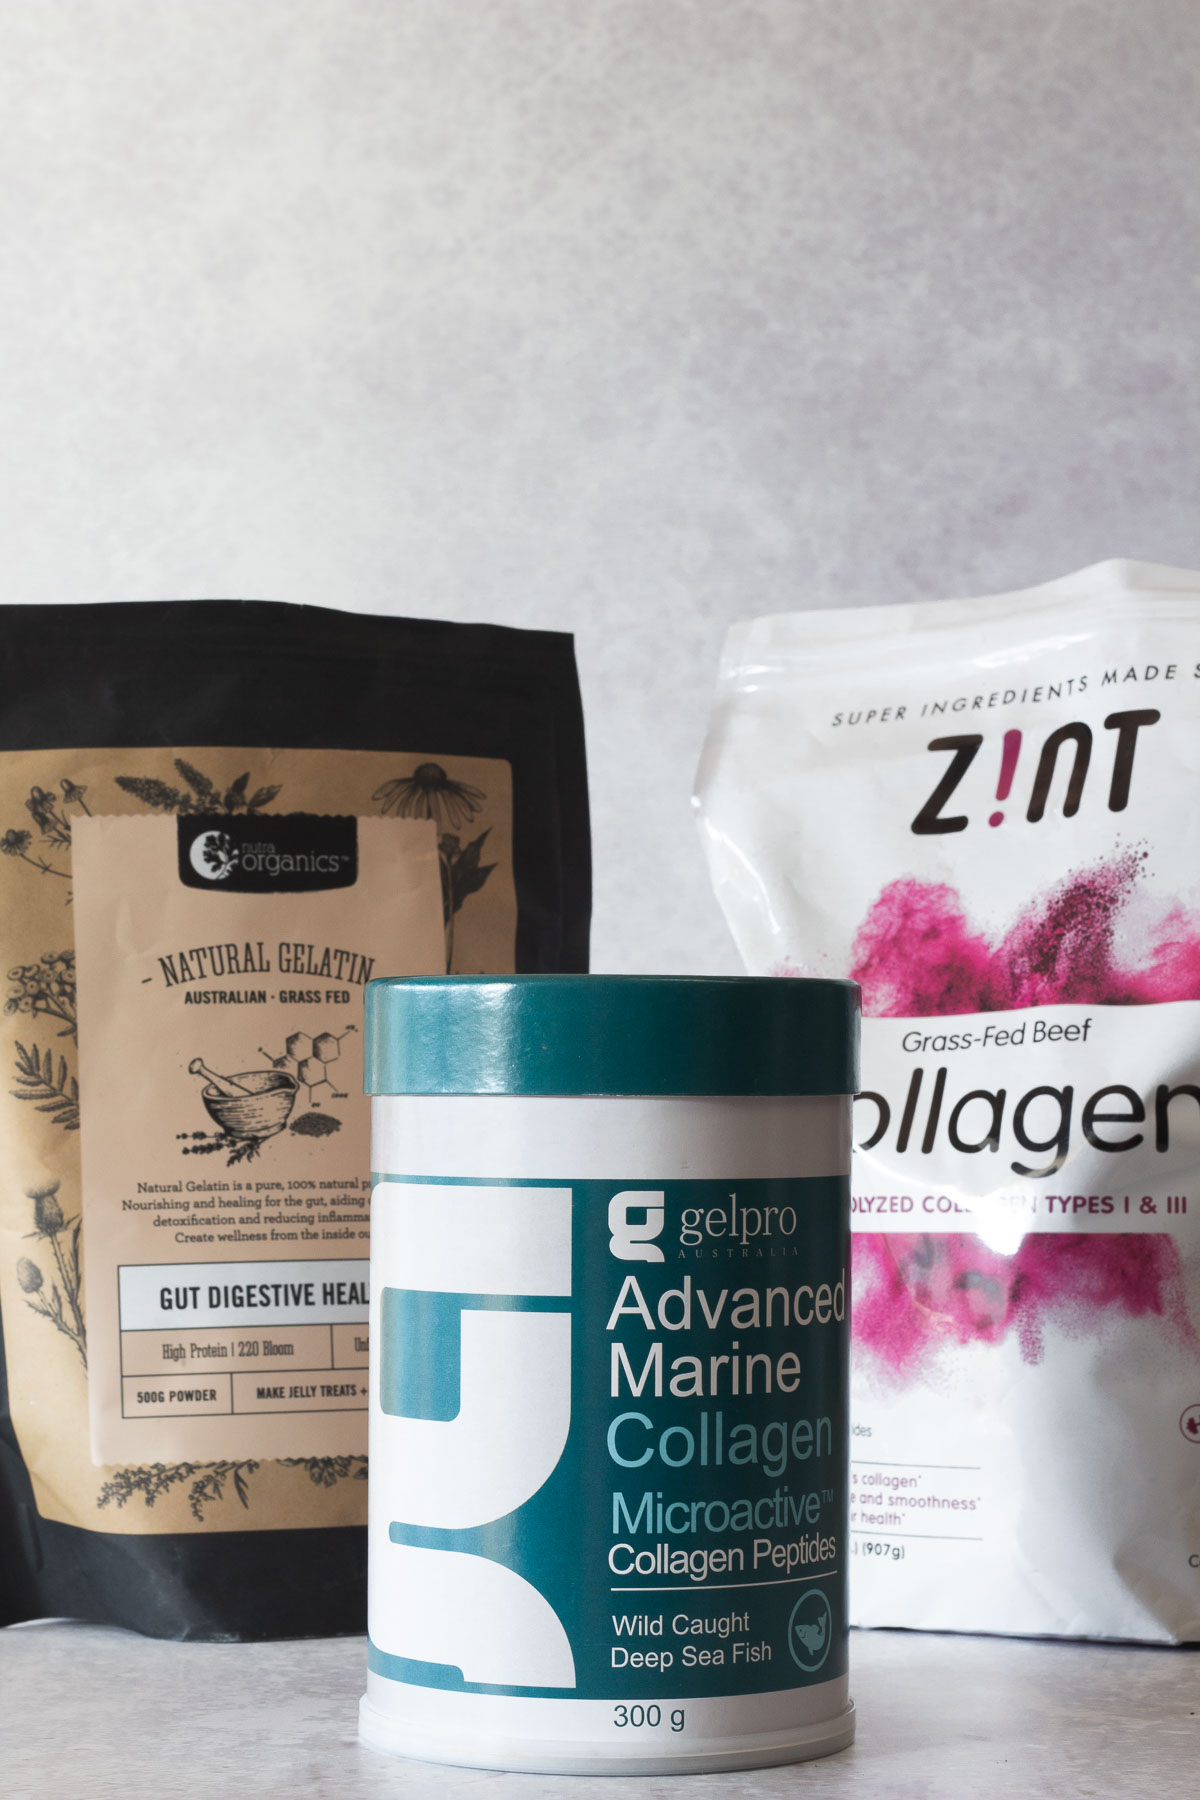 Various collagen and gelatin products on display